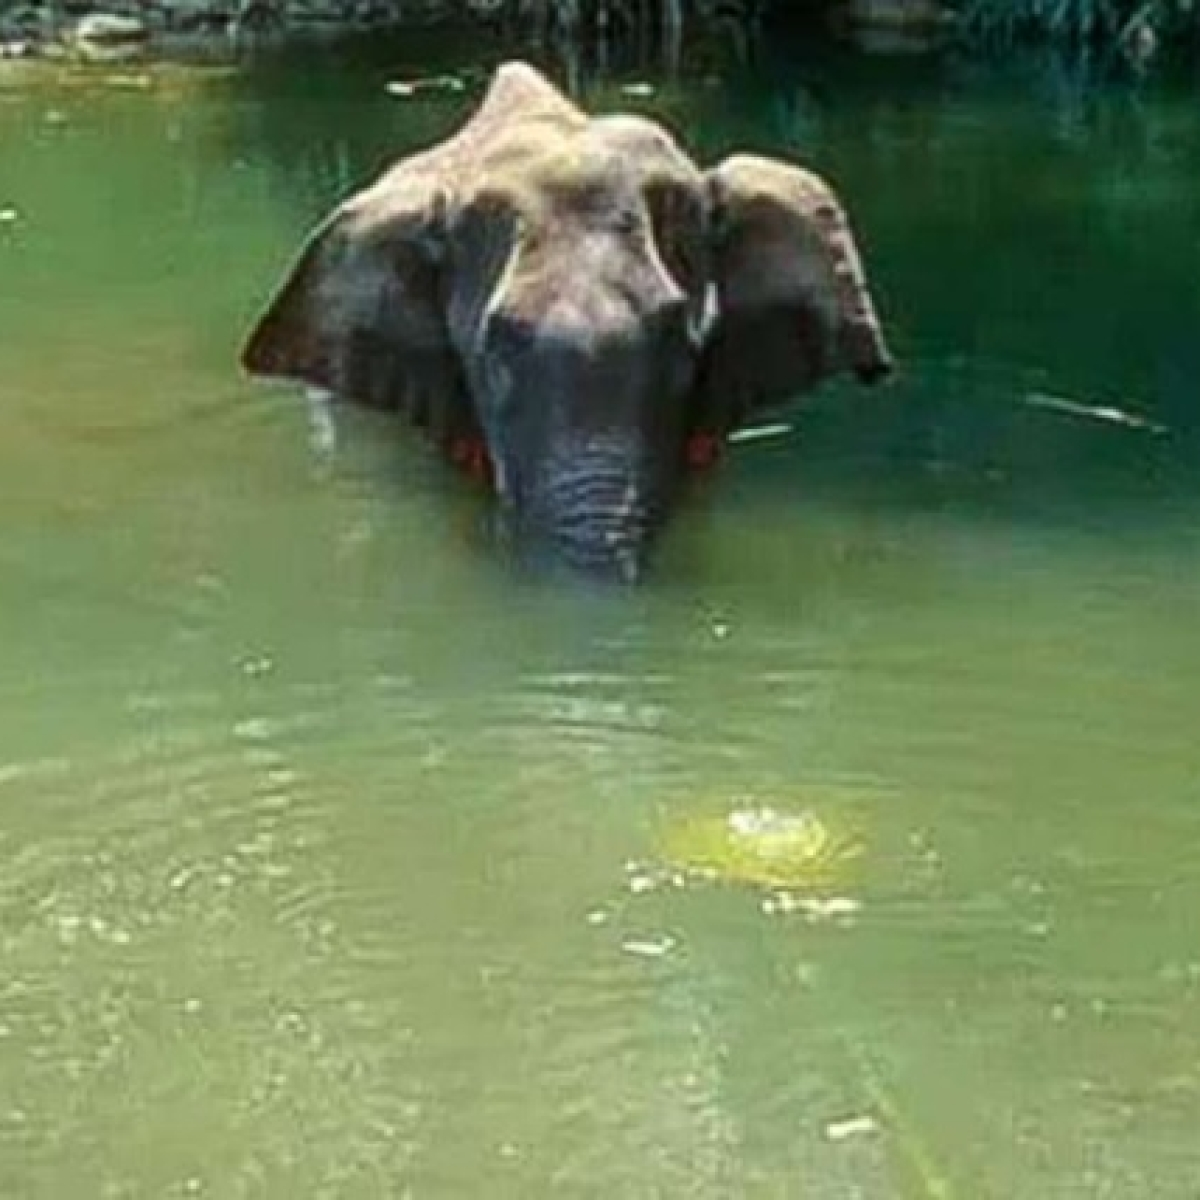 Kerala Elephant death: Not a pineapple, elephant had eaten a coconut filled with explosives, says report